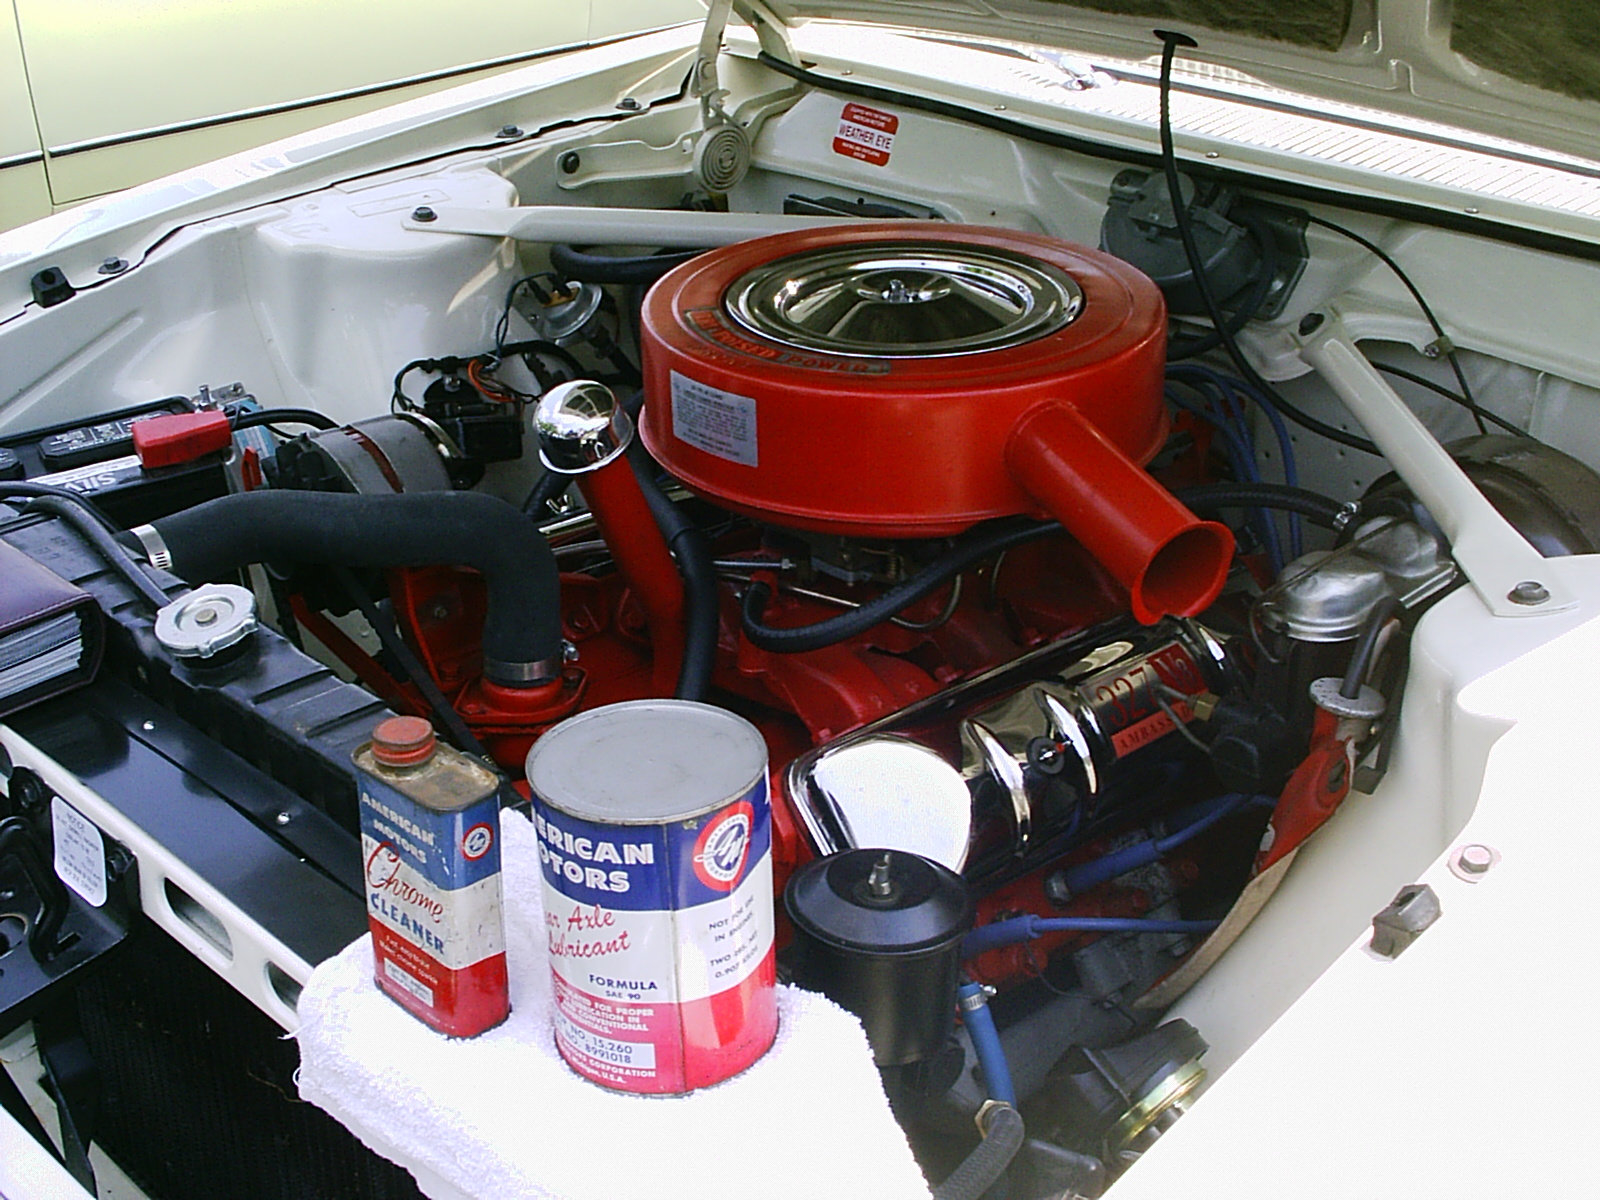 hight resolution of file 1963 327 v8 engine in ambassador jpg